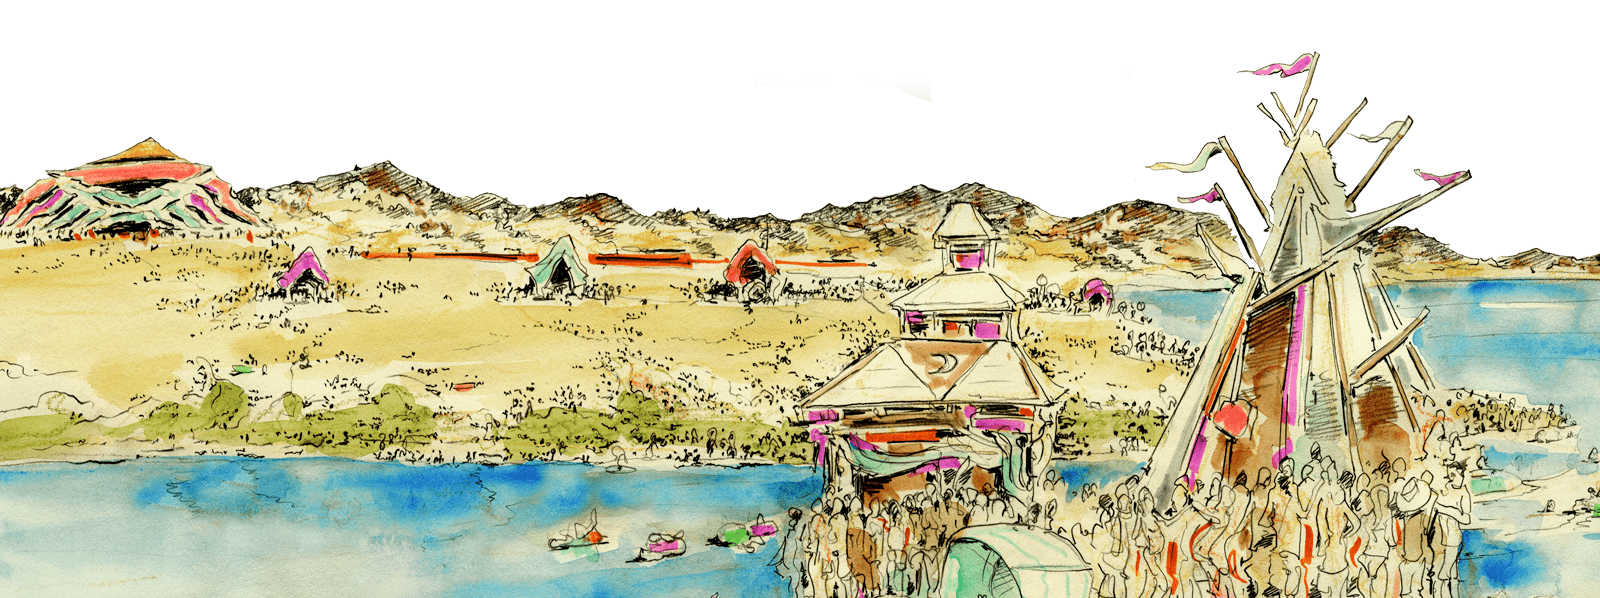 Sketchup drawing village. All things psychedelic studies